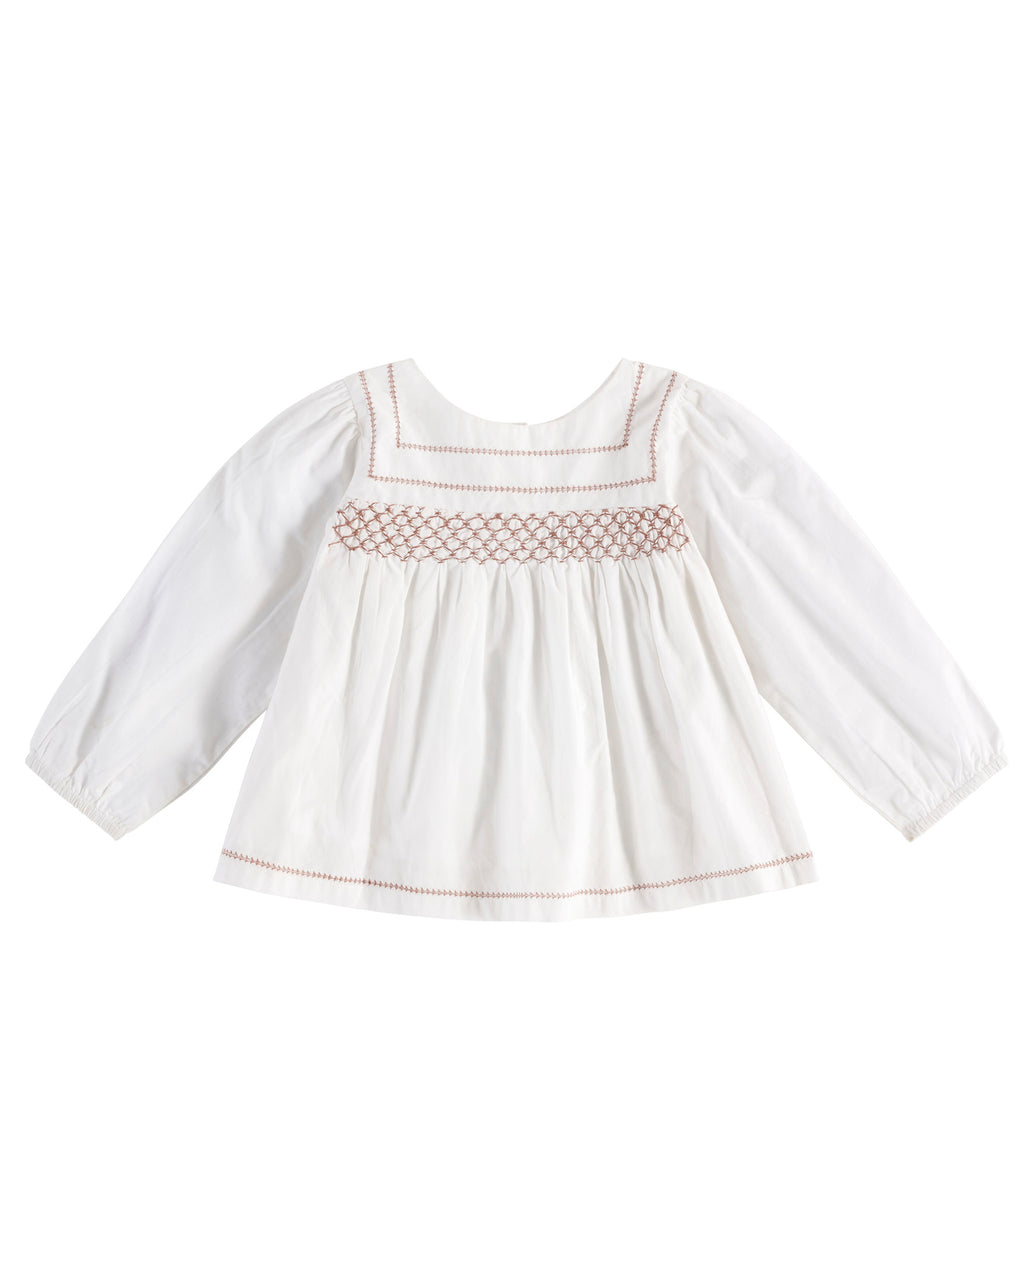 Charlotte blouse – off-white with clay smocking